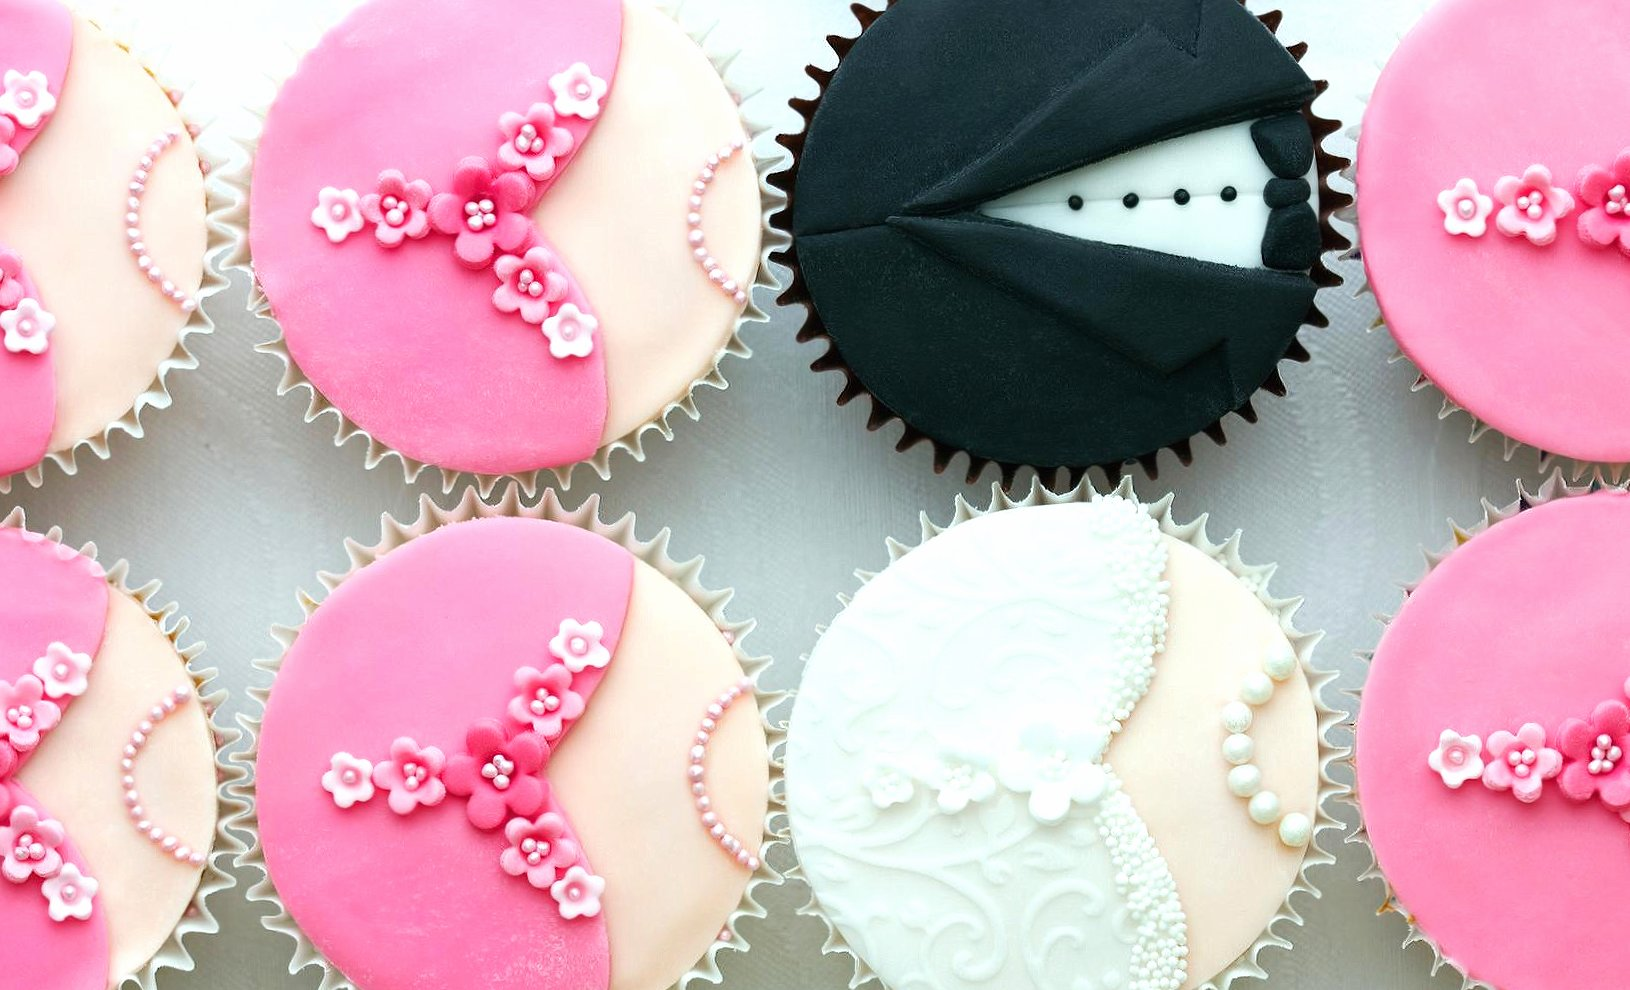 Amazing cupcake wallpapers HD quality